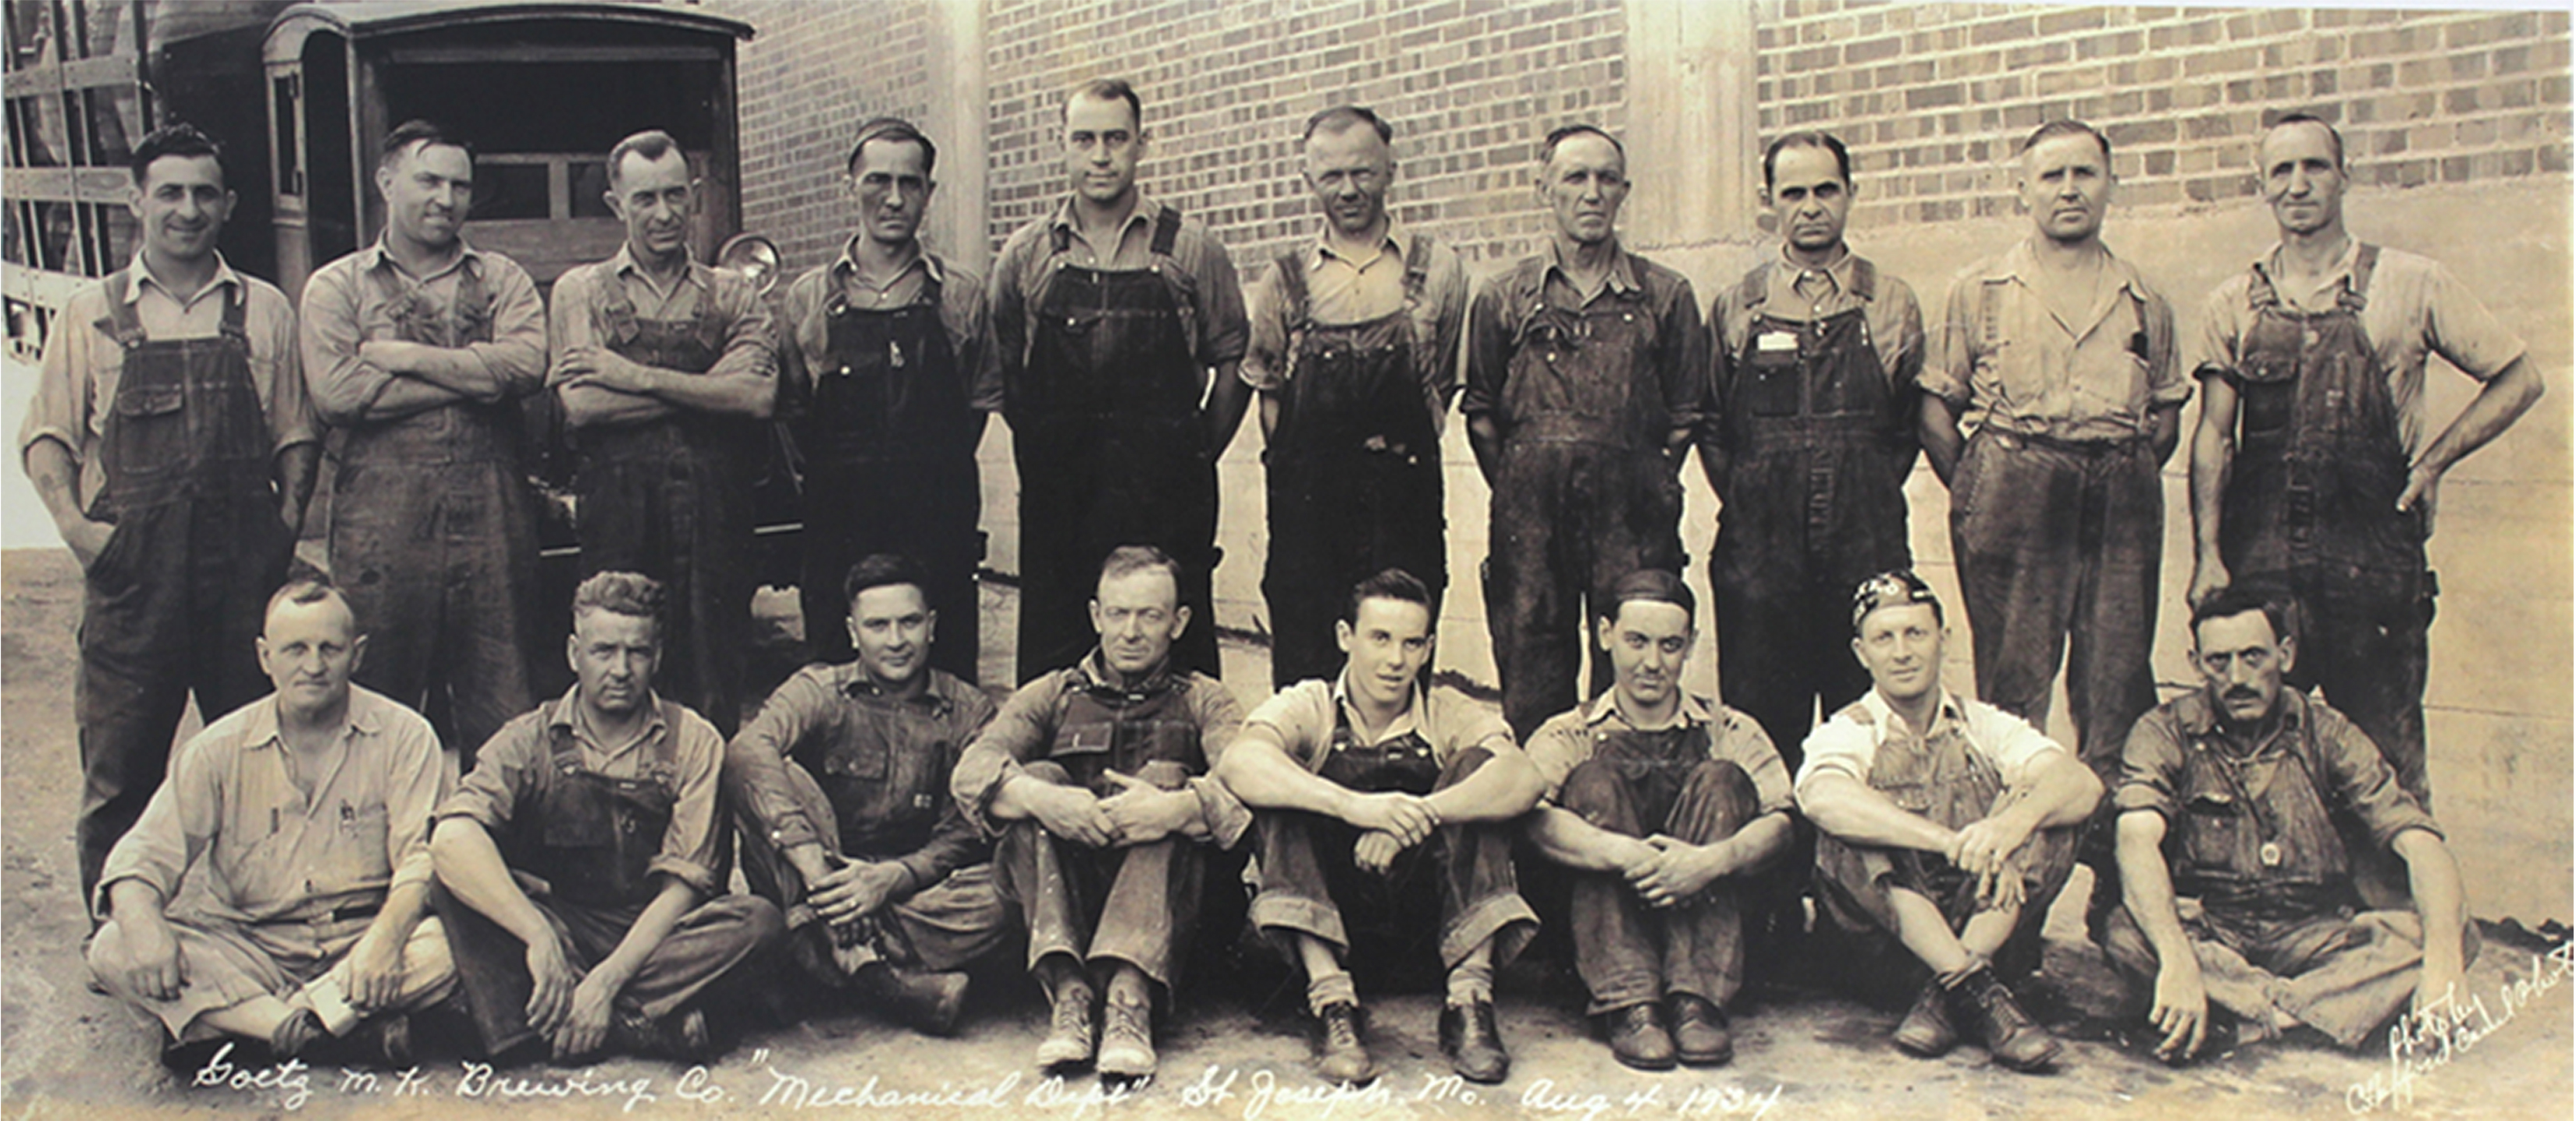 Back row, fifth from the left, George Hopkins Sr. poses with his mechanical crew from the Goetz Brewery.  1934